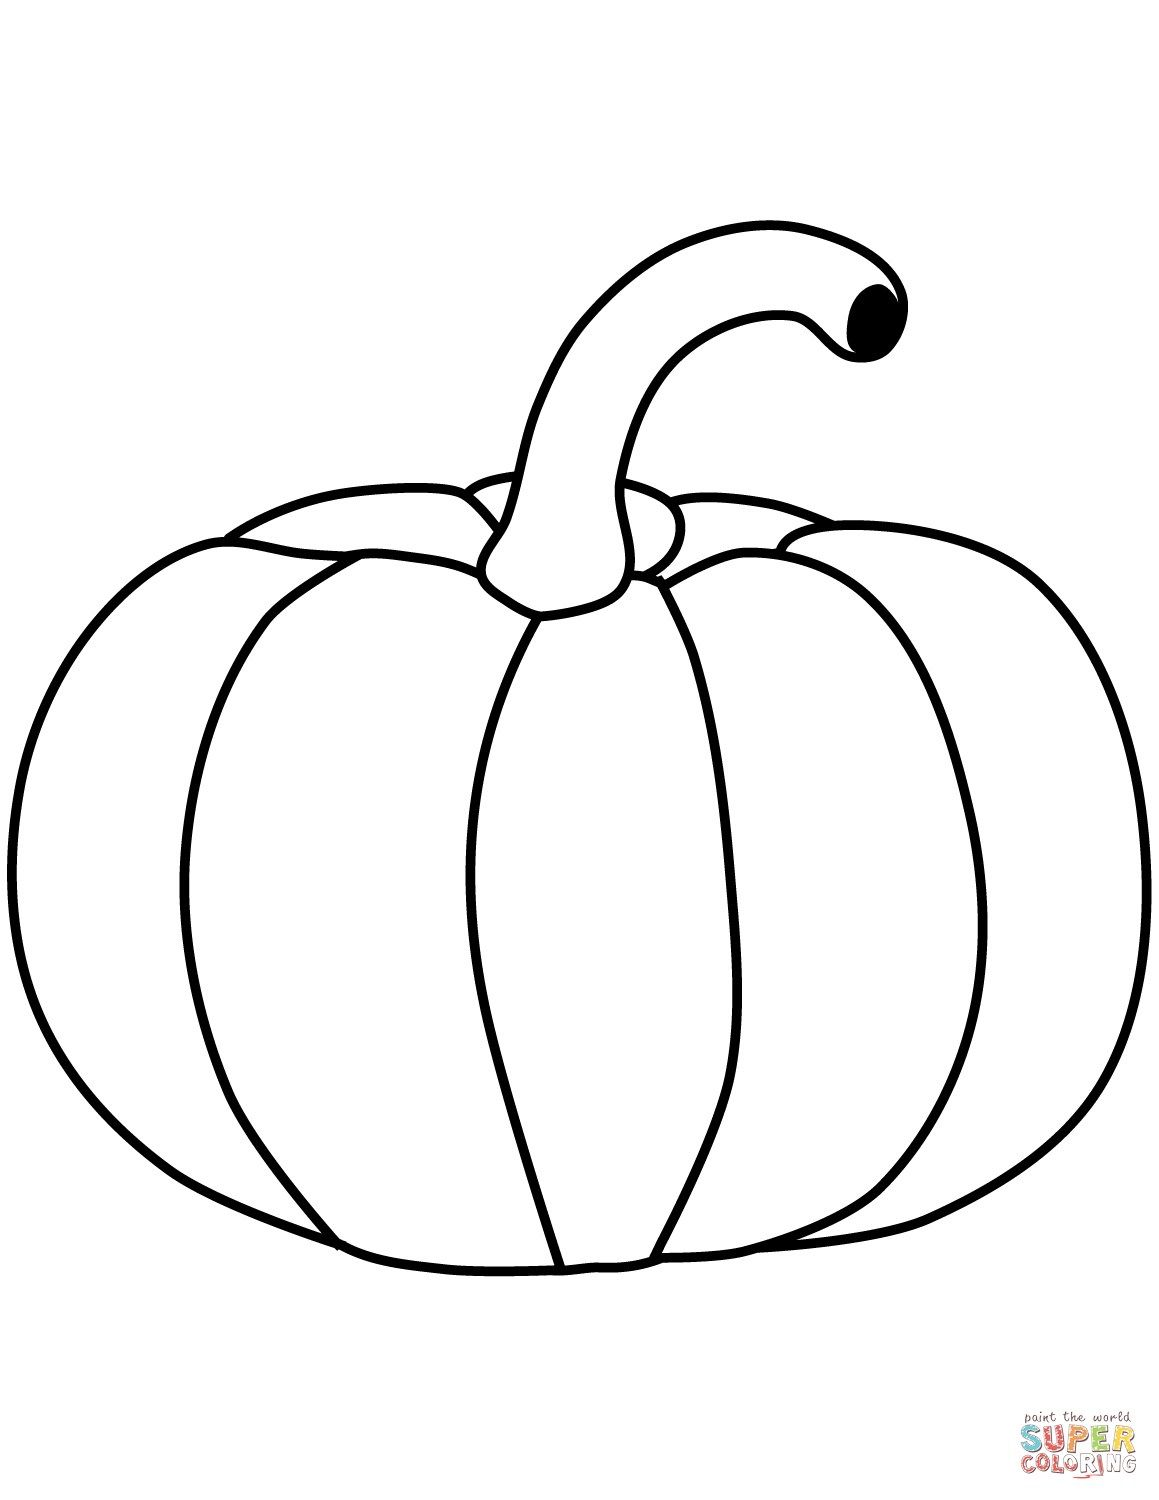 Blank Pumpkin Coloring Pages Pictures